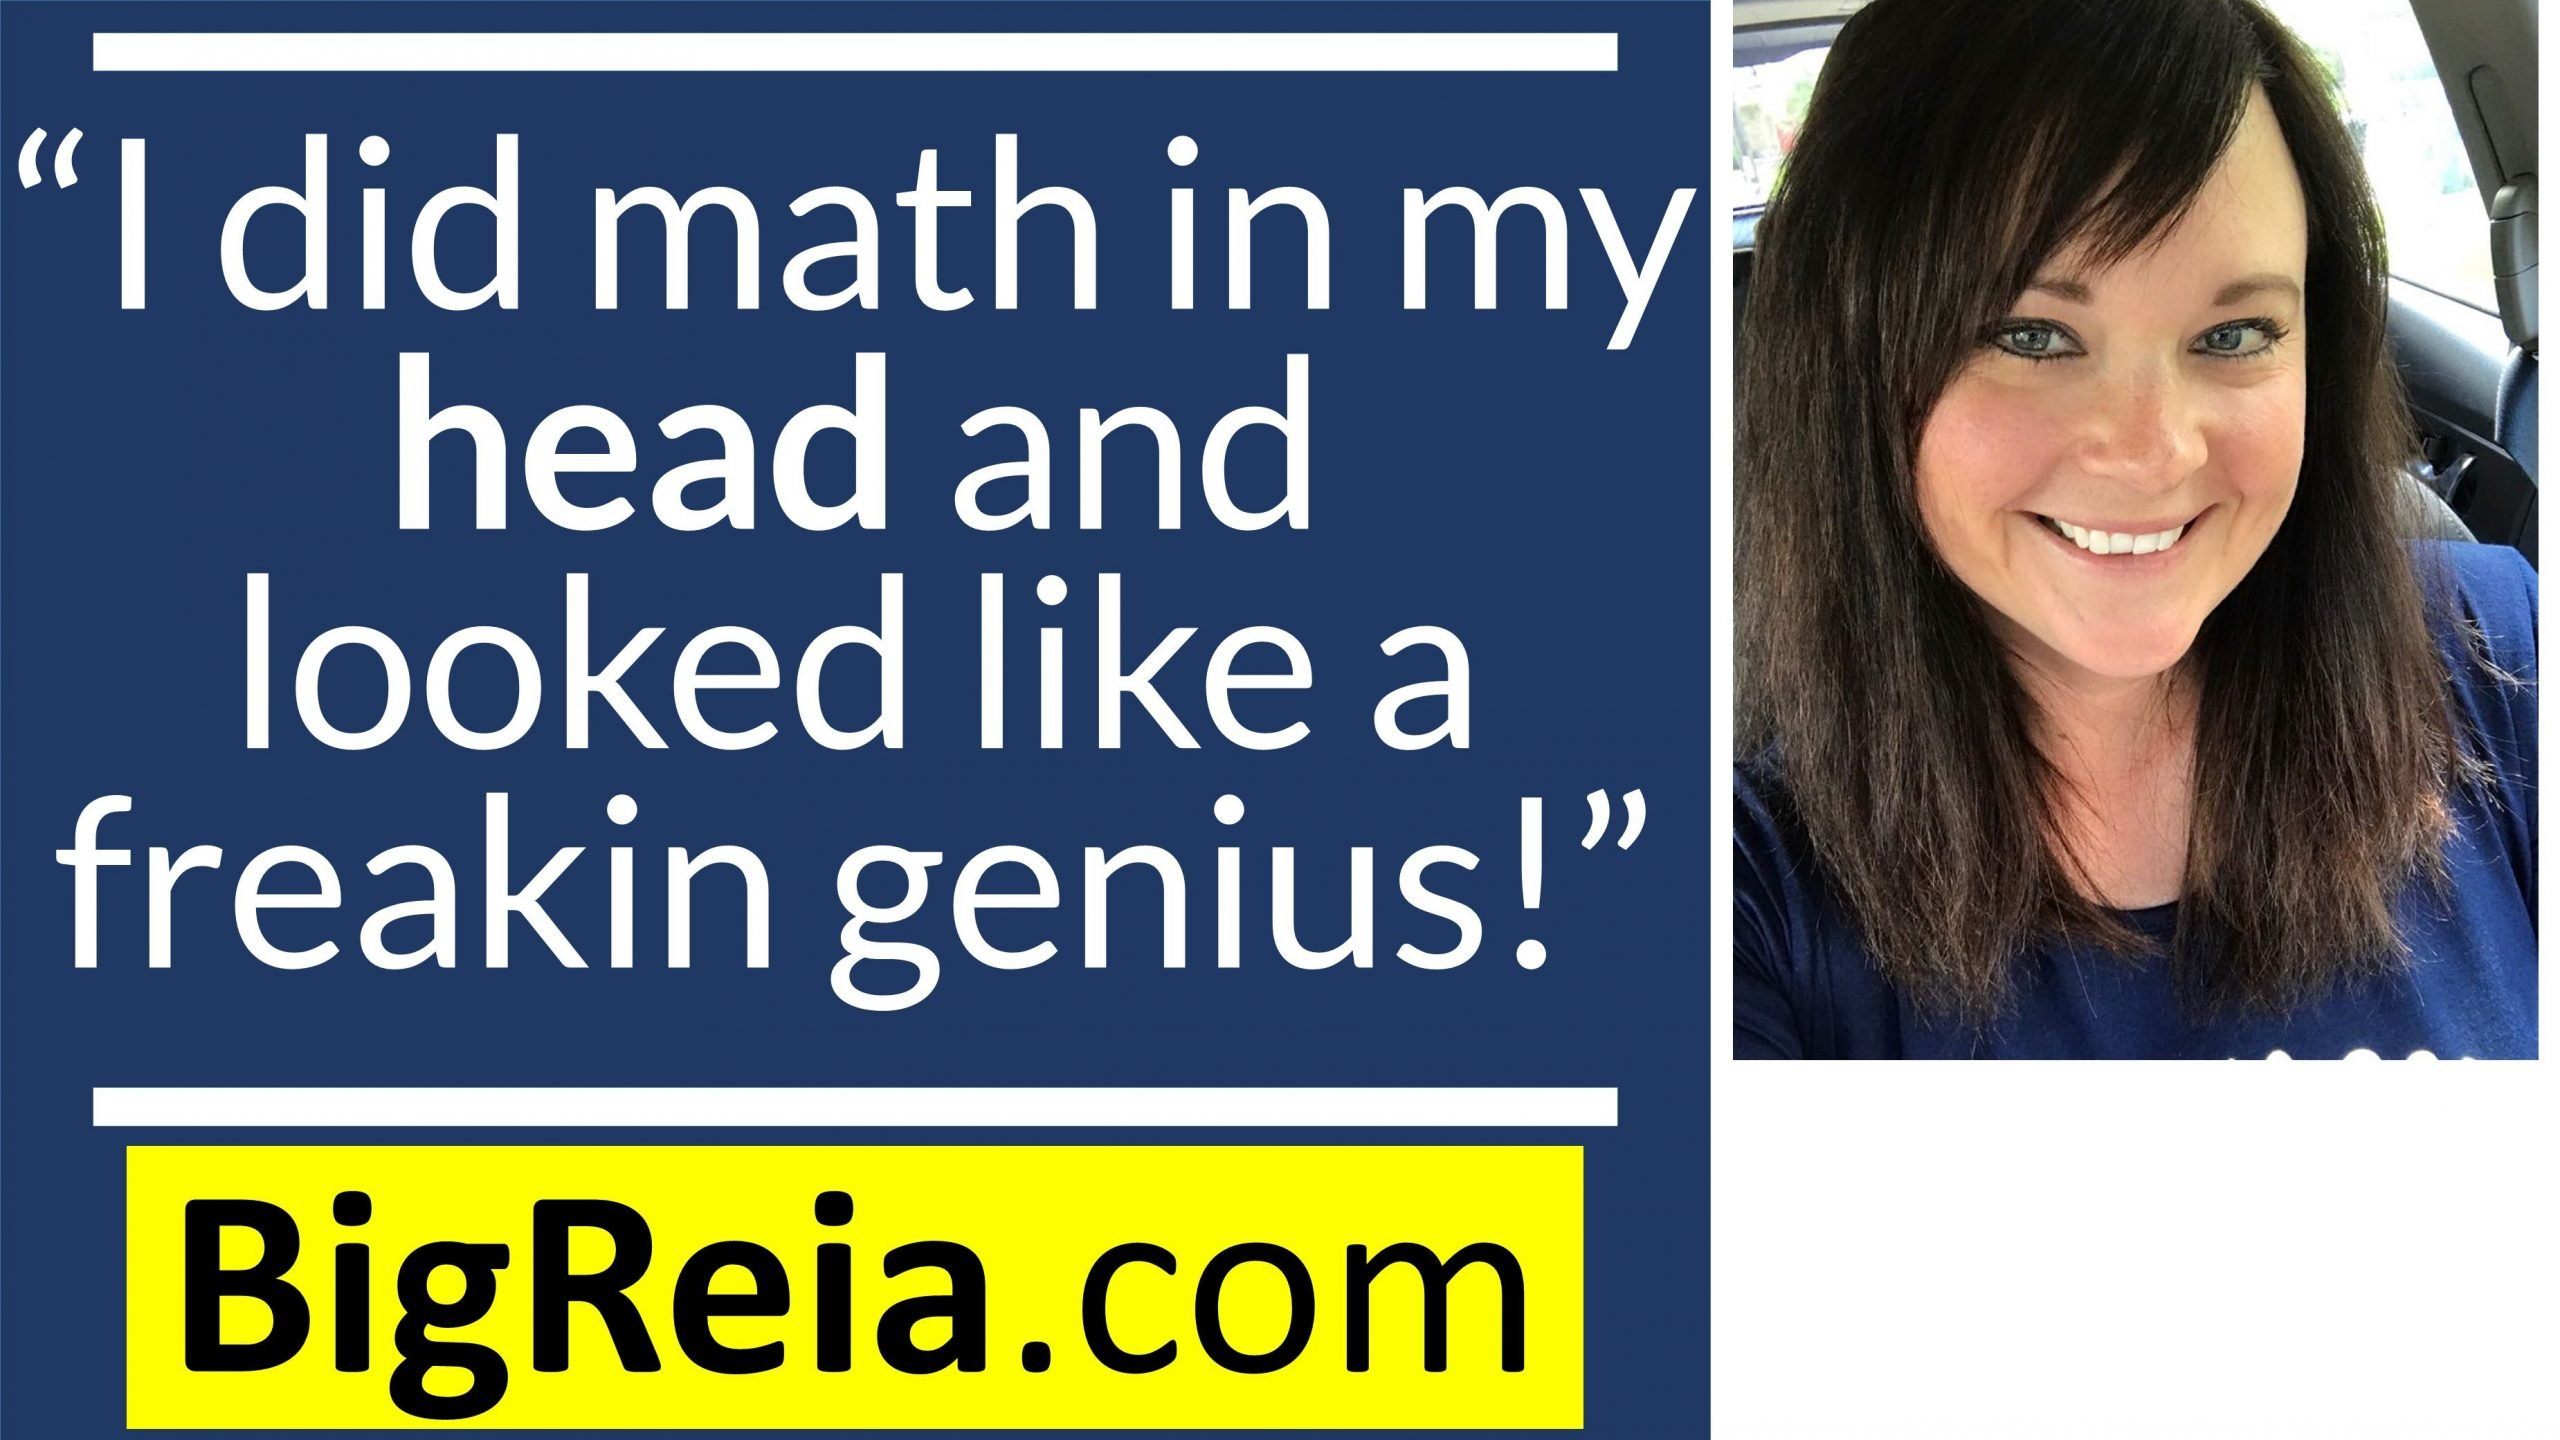 """I can't believe I did math in my head and looked like a genius THANK YOU!"" Math class success story"